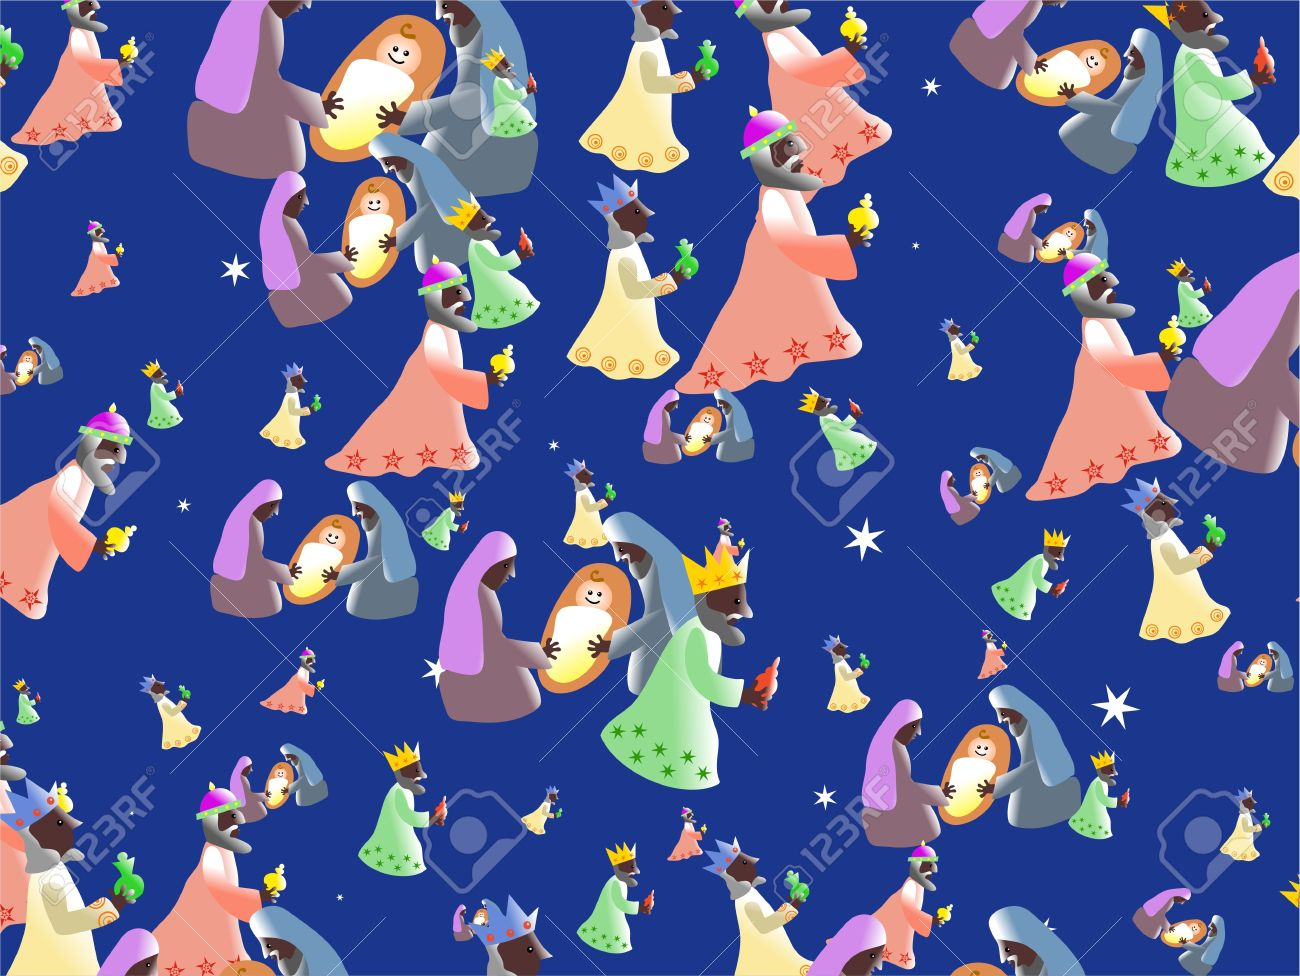 Christian Nativity Wallpaper Background With Mary And Joseph Baby Jesus Three Kings Bearing Gifts